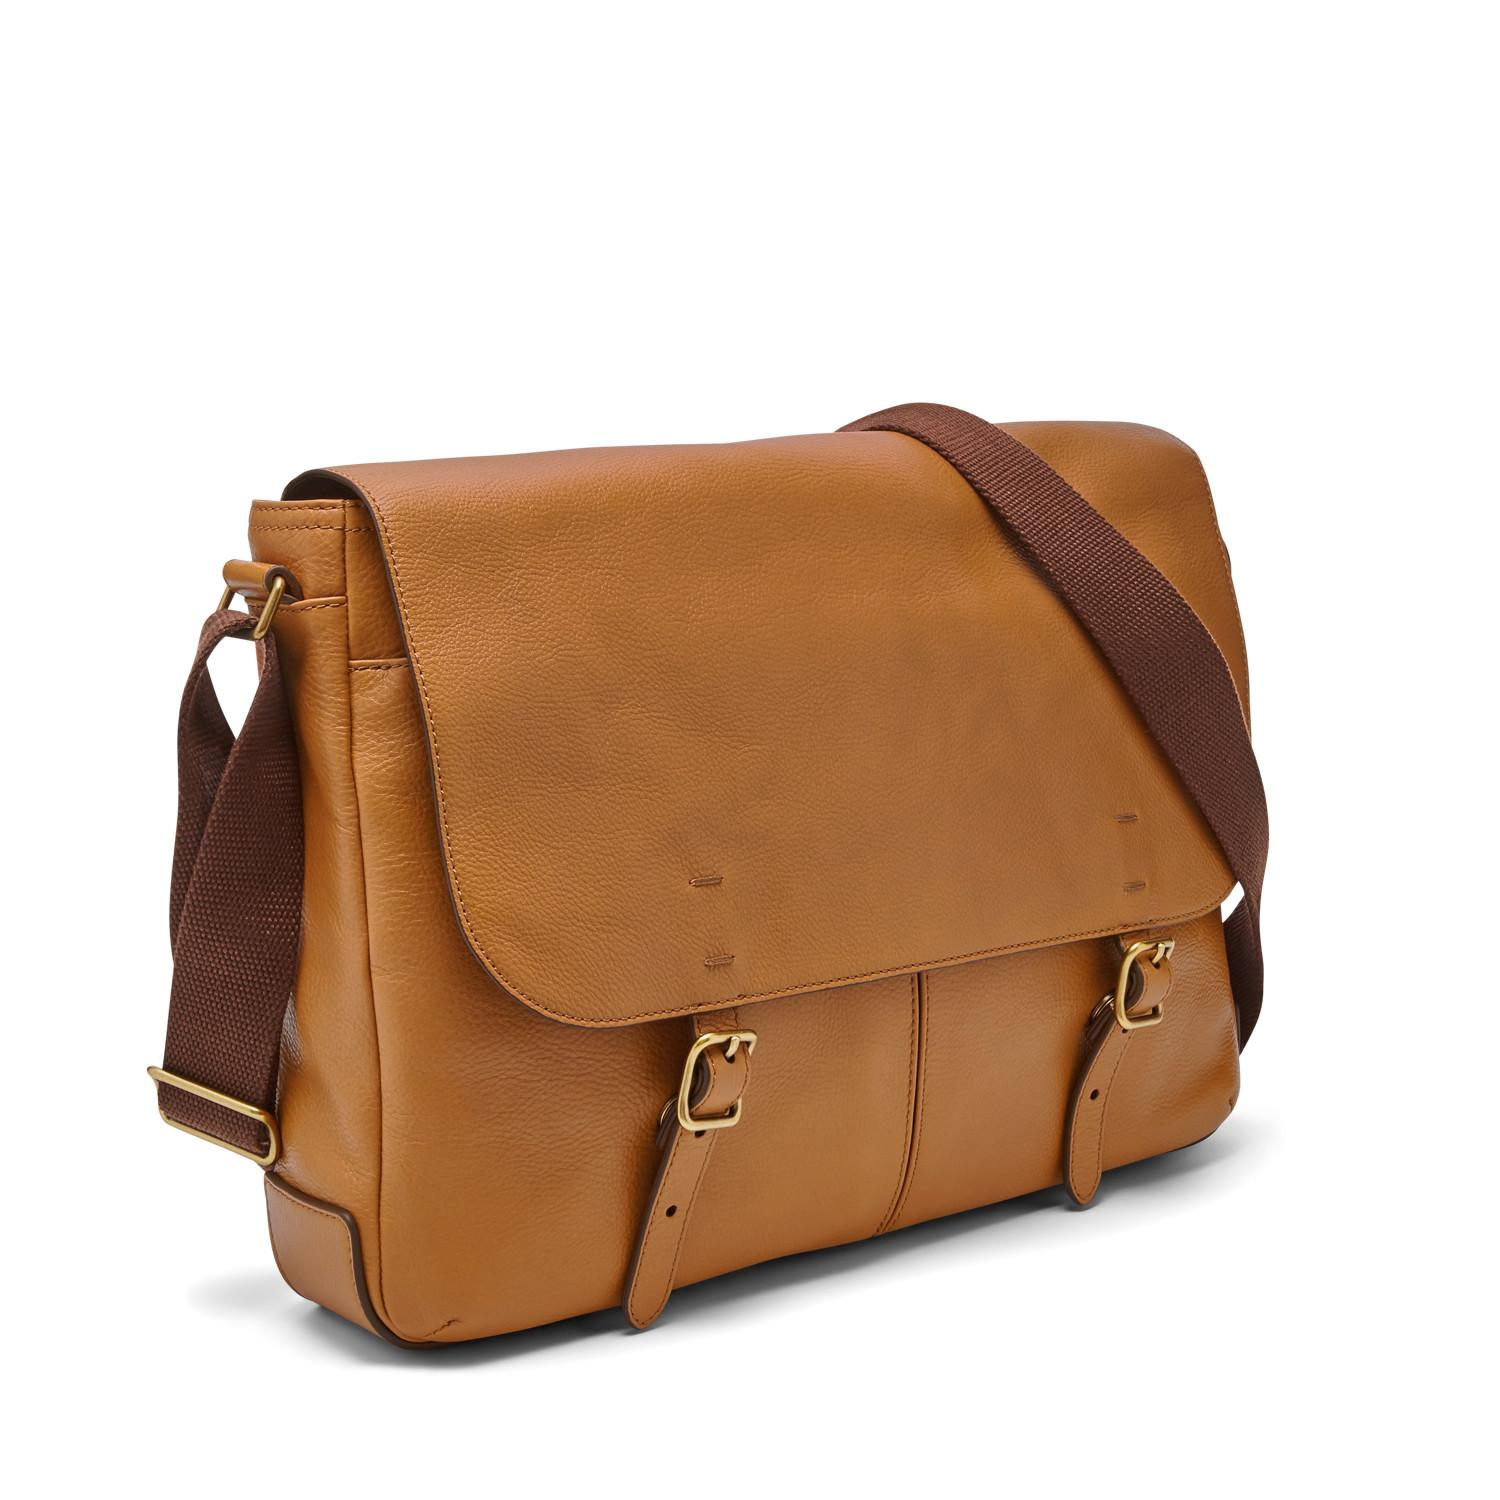 a52d2eeb481e Lyst - Fossil Buckner Messenger Bag Tan in Brown for Men